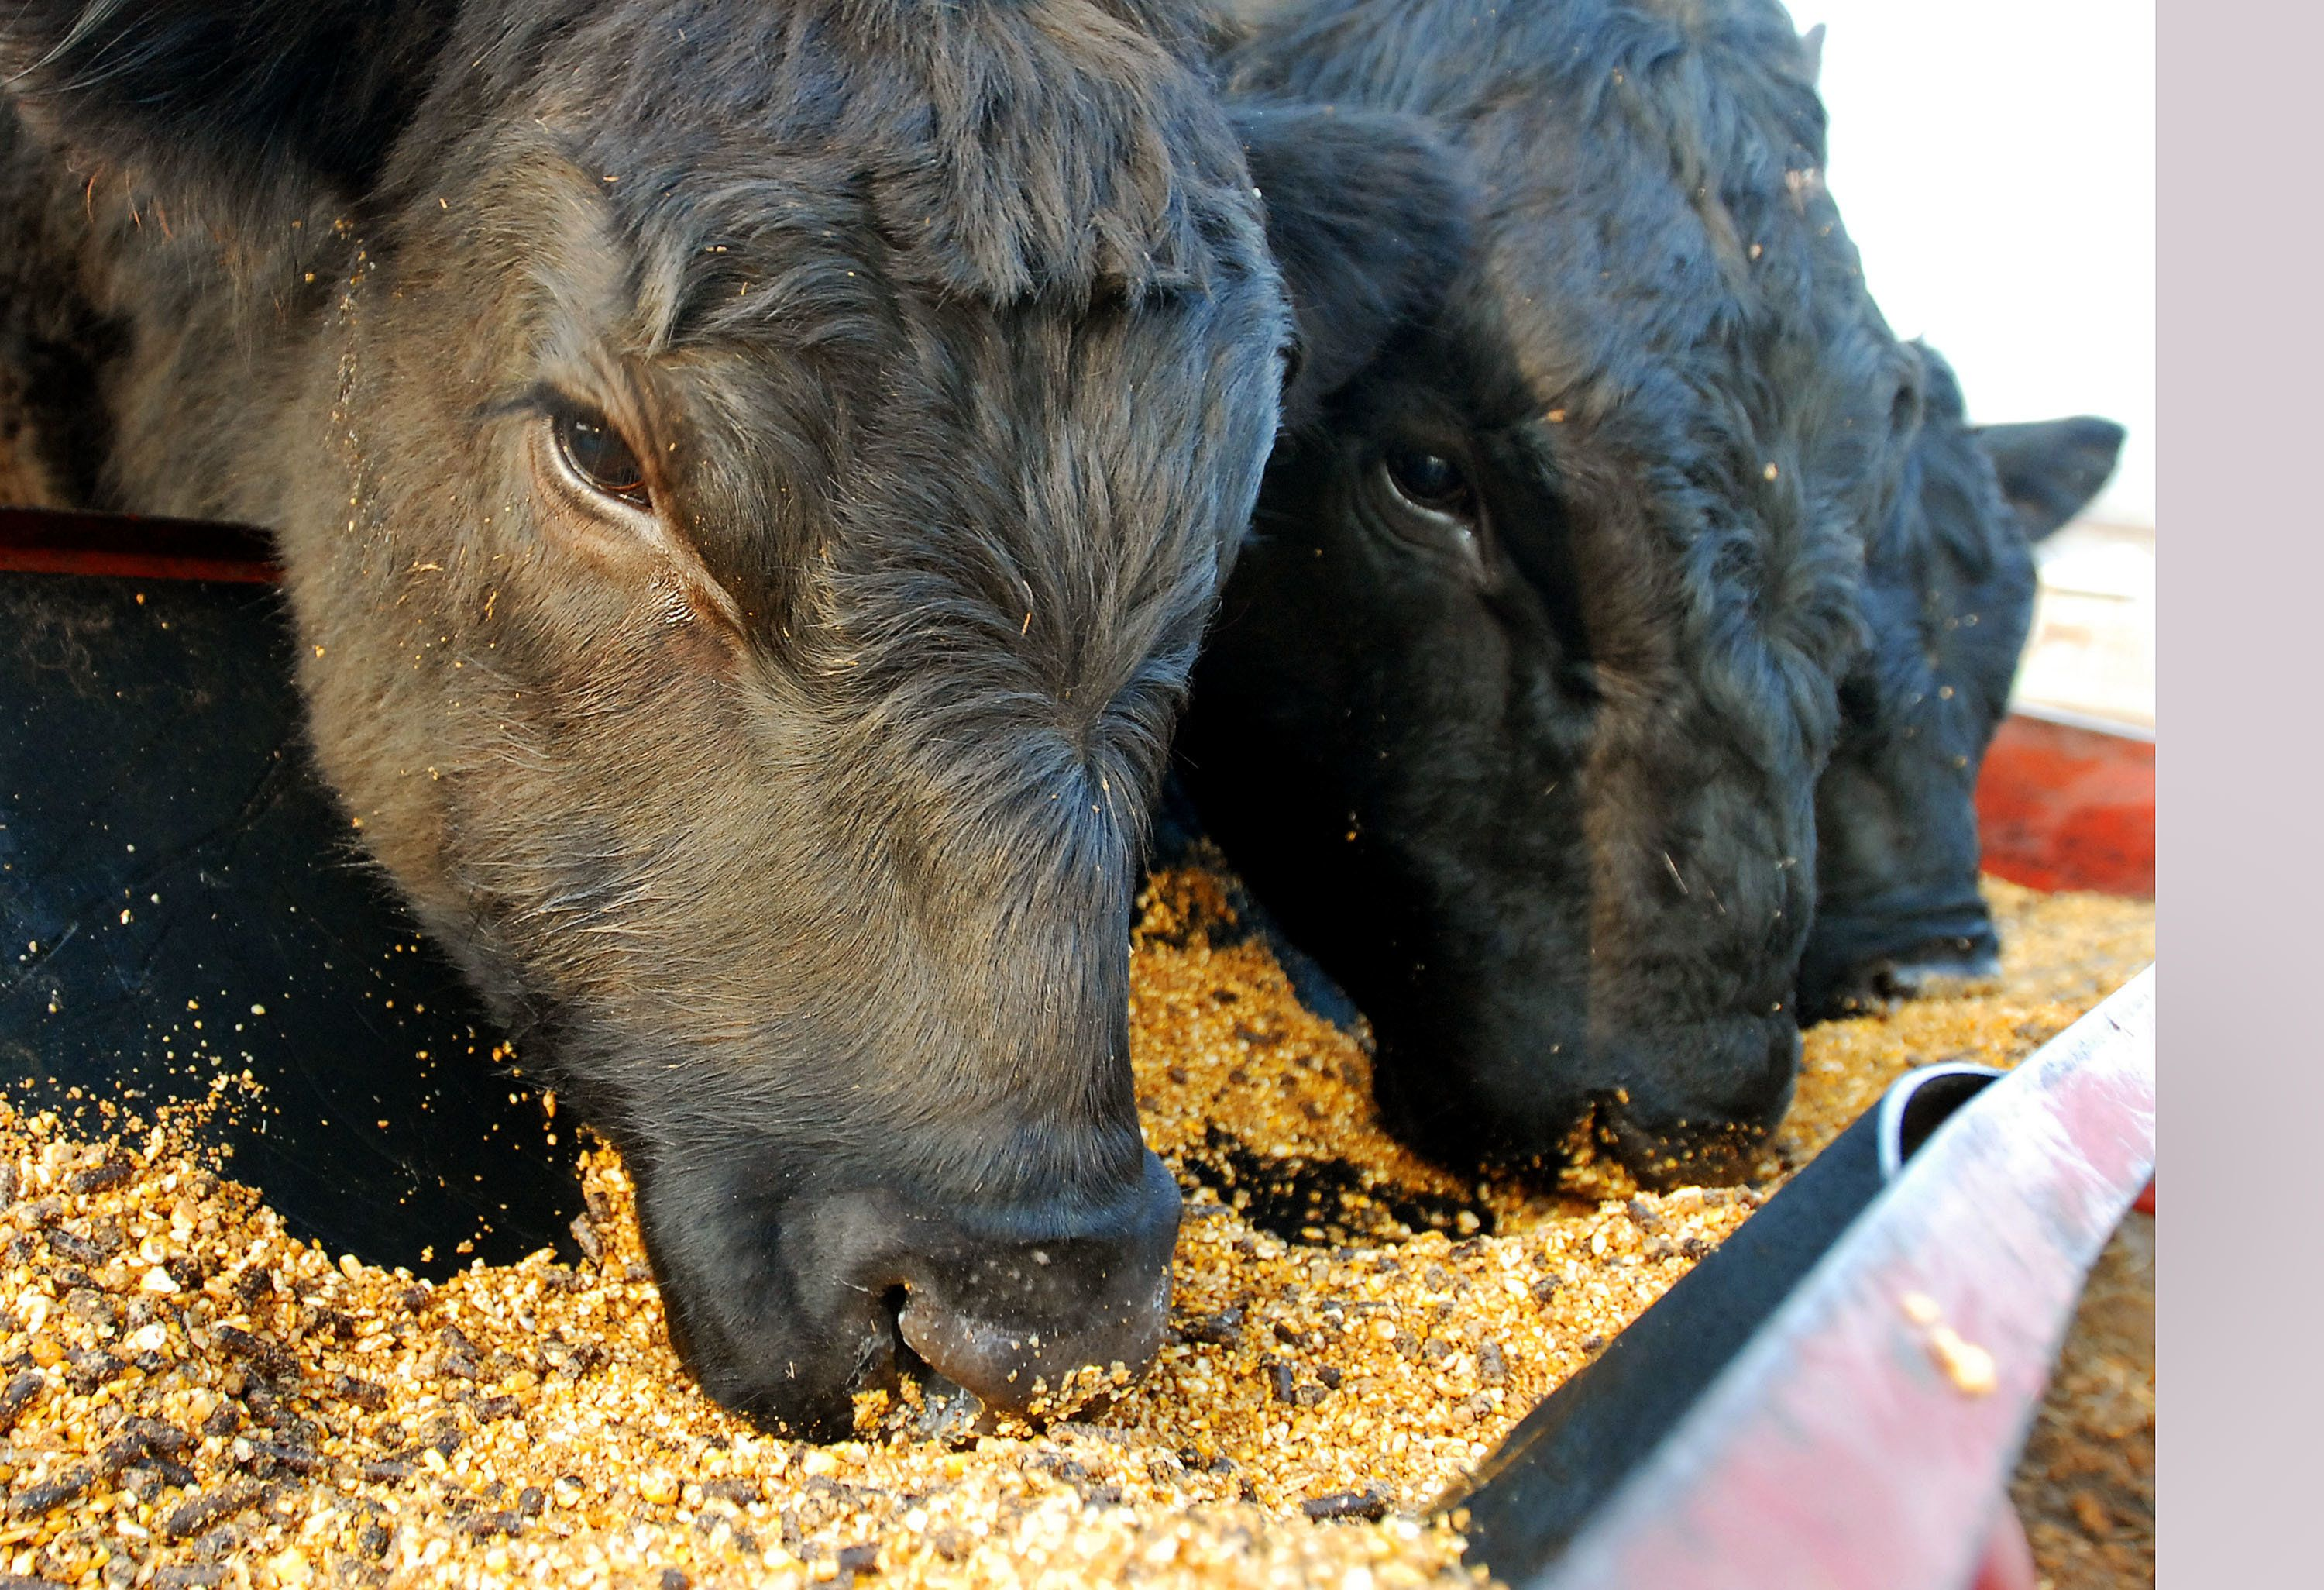 OWASSO, OK - MARCH 13:  Maine-Anjou bulls feed on a fattener feed that includes corn at Kornegay Cattle Co. March 13, 2007 in Owasso, Oklahoma. Kornegay is in the midst of the spring calving season when he normally doubles the feed for his cattle. But rising corn prices have forced him to cut feed by half.  (Photo by Brandi Simons/Getty Images)